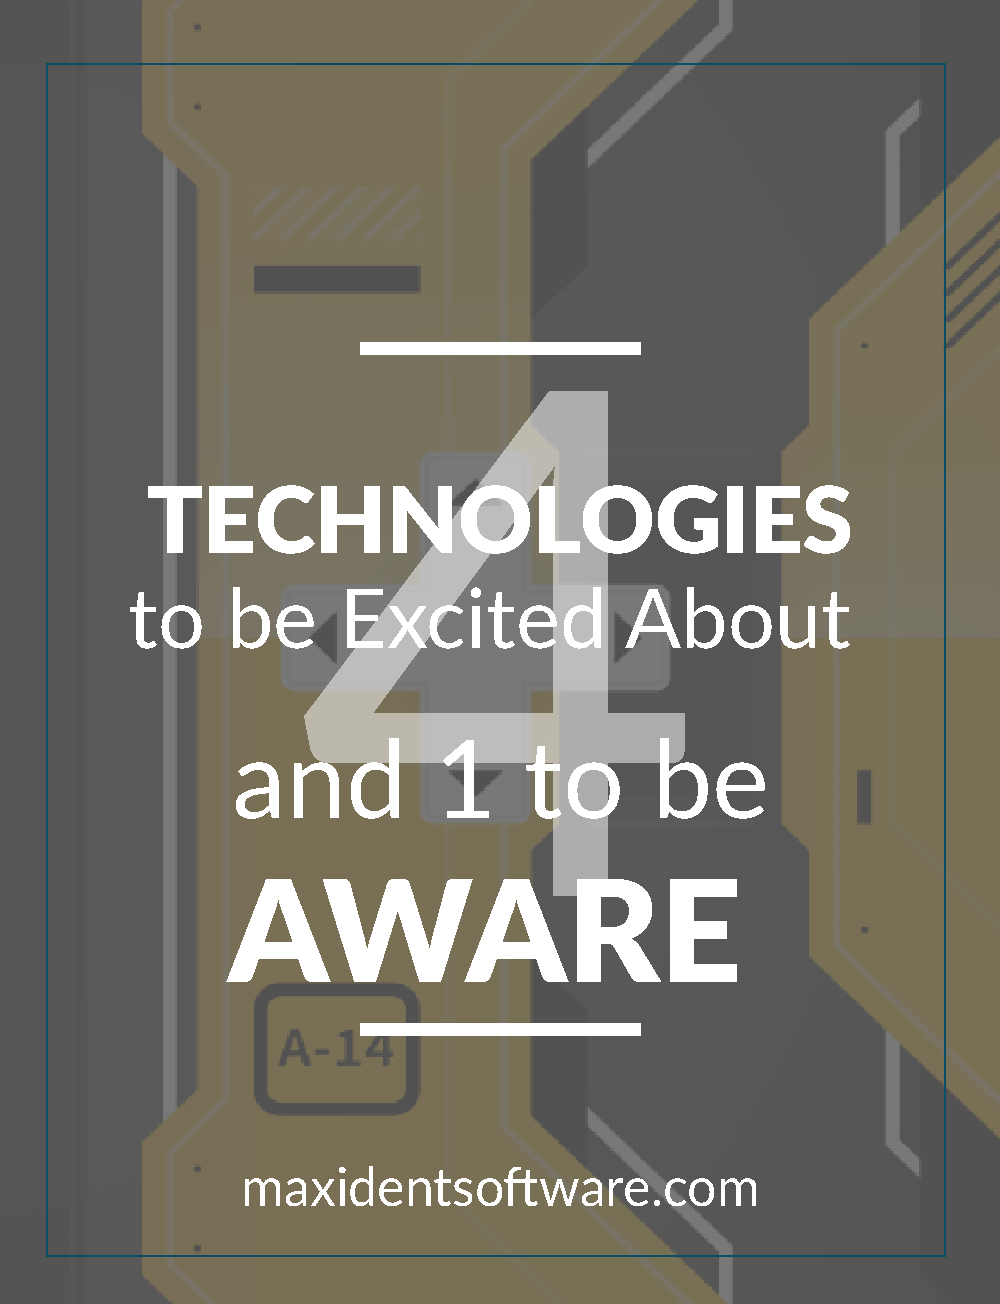 4 Technologies to be Excited About and 1 Reason to Be Aware